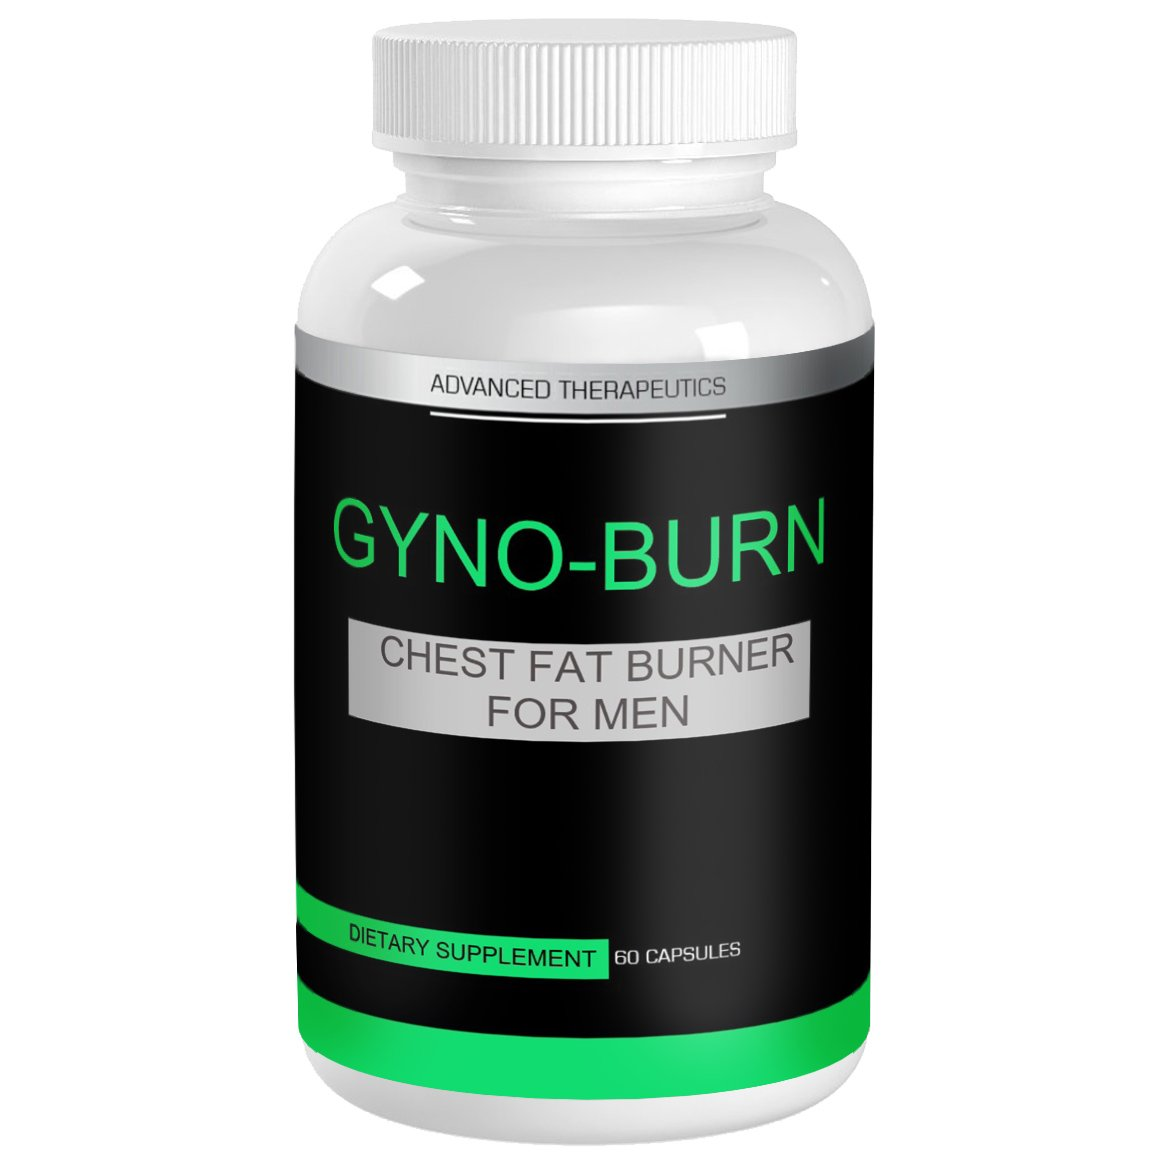 Gyno-Burn Gynecomastia Pills Male Chest Fat Burner Reduces Breast Fat and Eliminates Embarrassing Man Boobs Fast. Male Boob Fat Burners Target Stubborn Man Boobs Helping You Lose The Male Boobs Fat